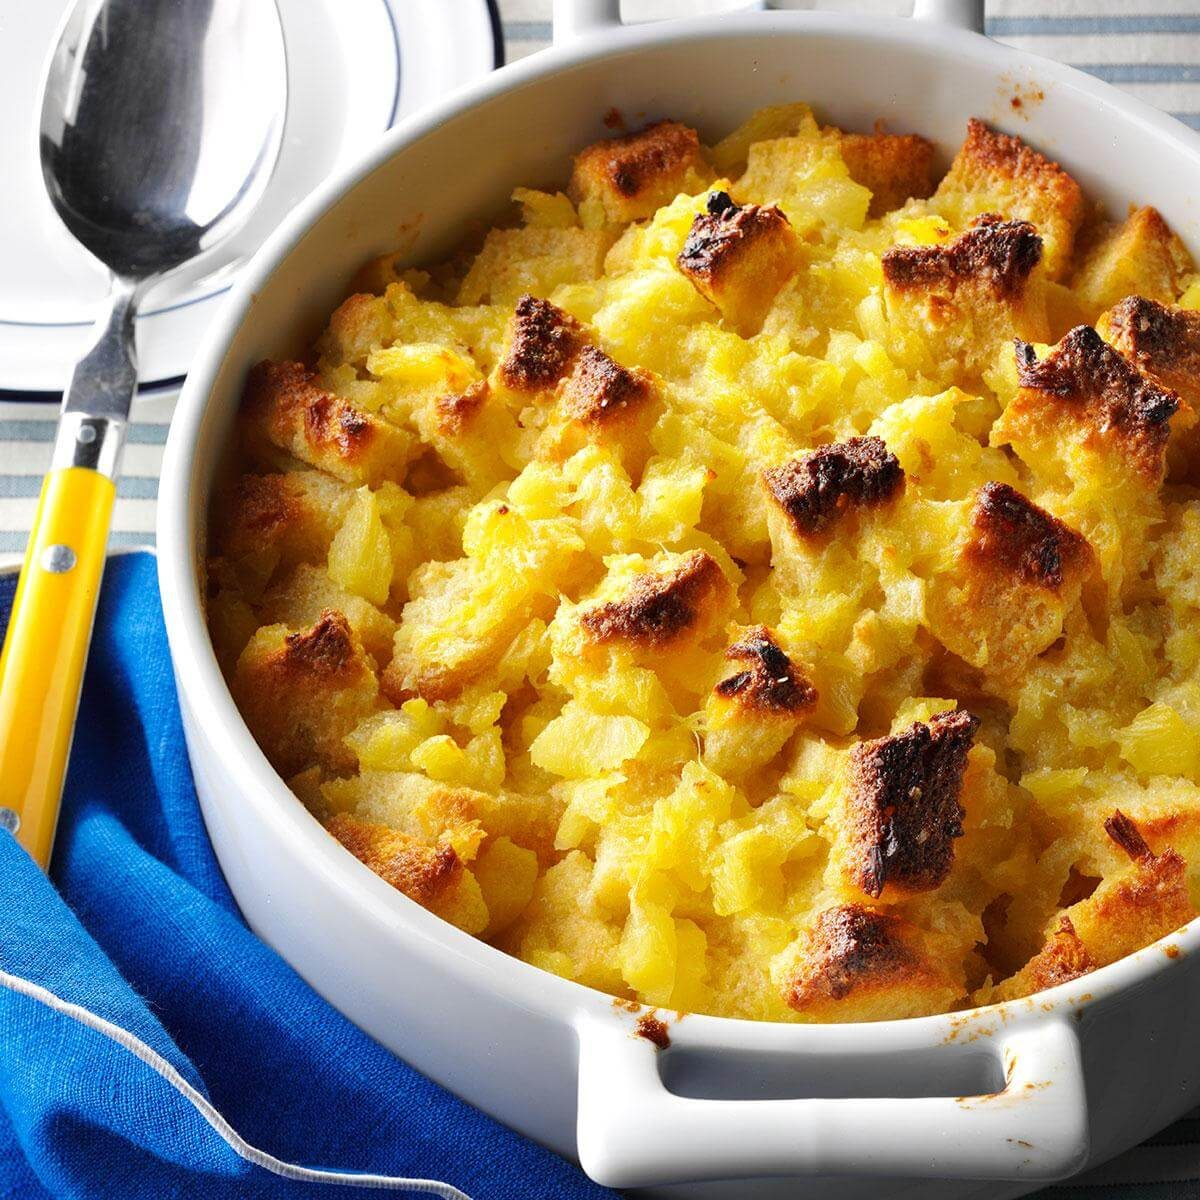 Mississippi: Scalloped Pineapple Casserole